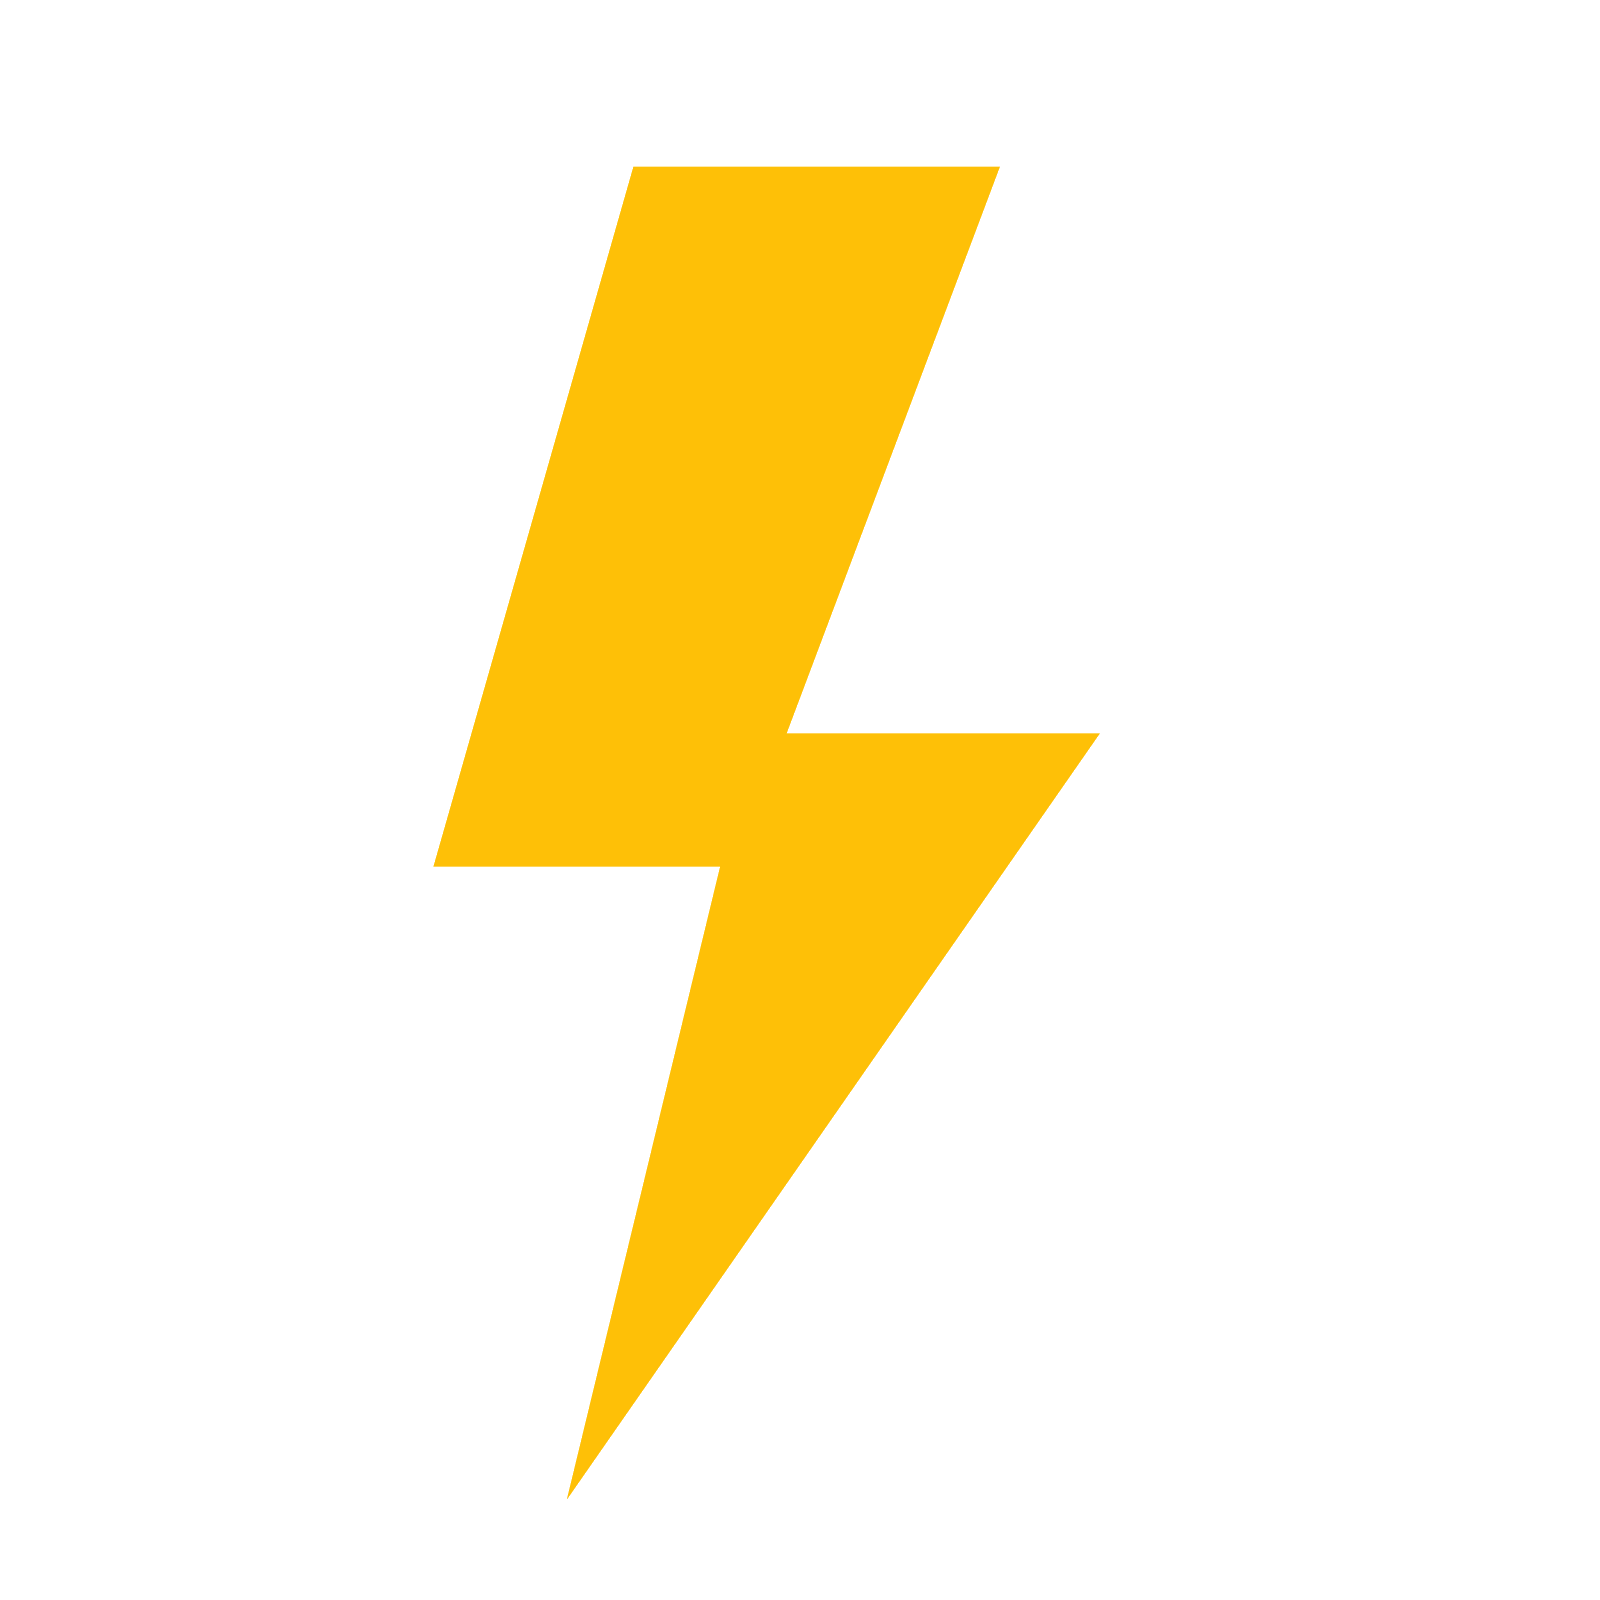 Flash İcon Png - Flash Icon Png #124889 - Free Icons Library